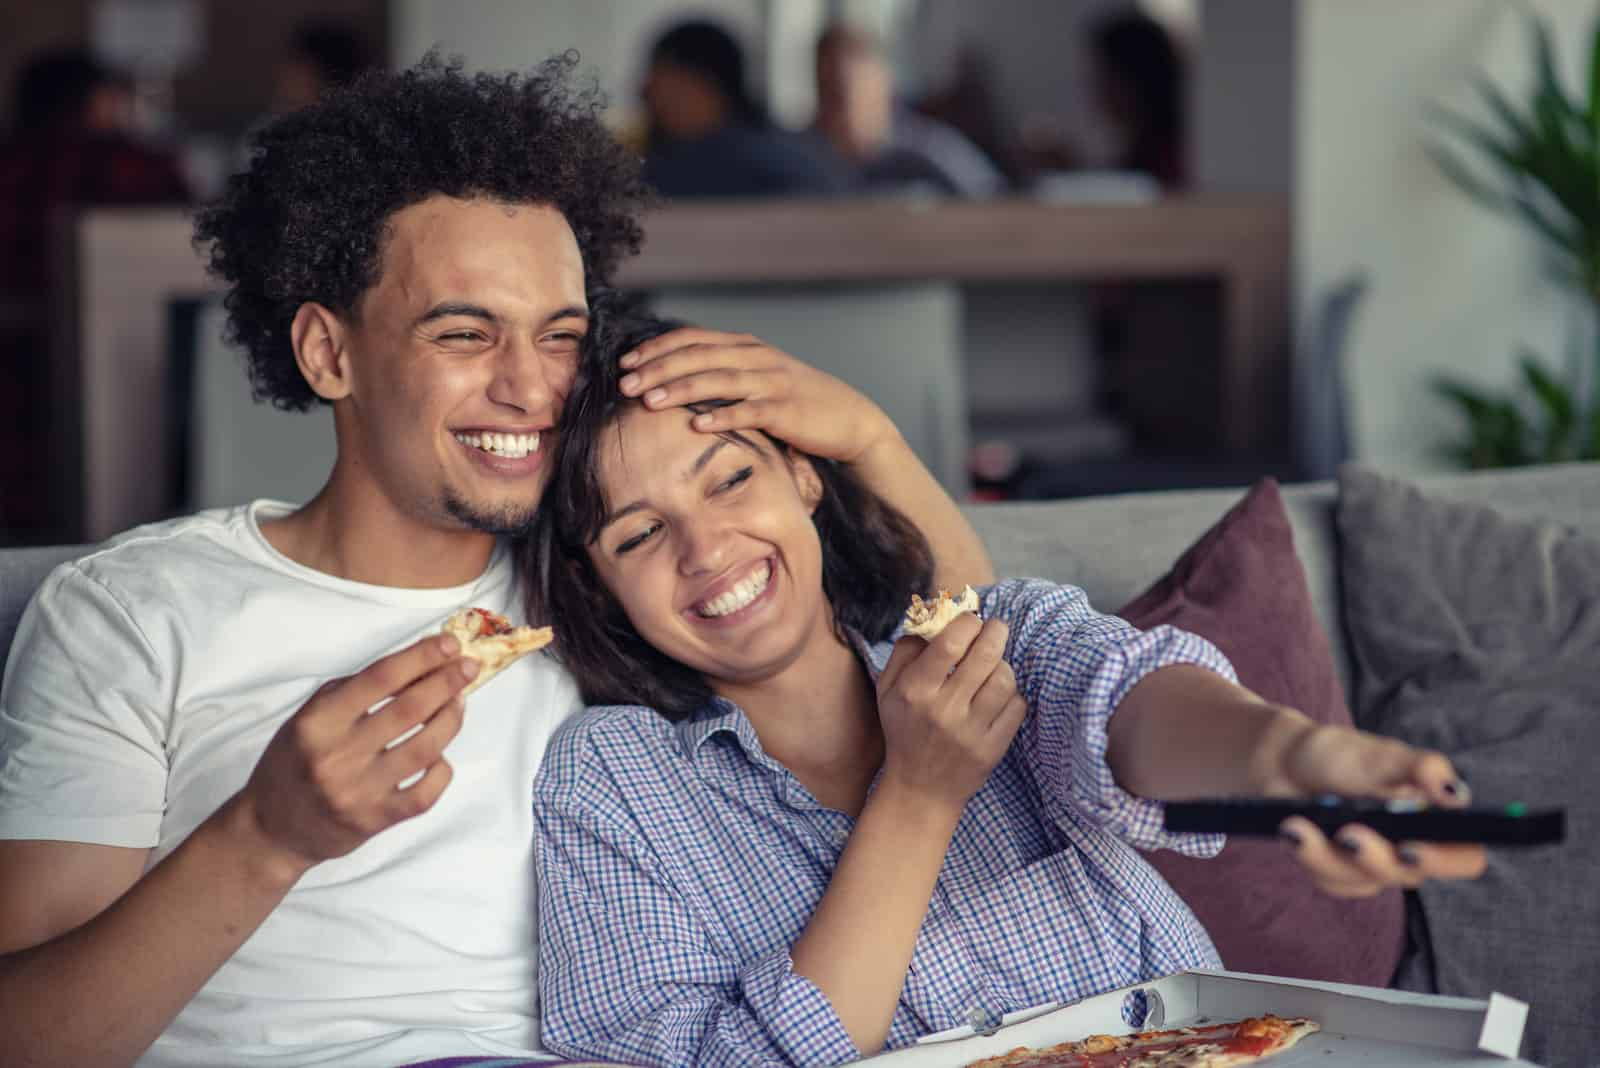 happy couple eating pizza and watching a movie